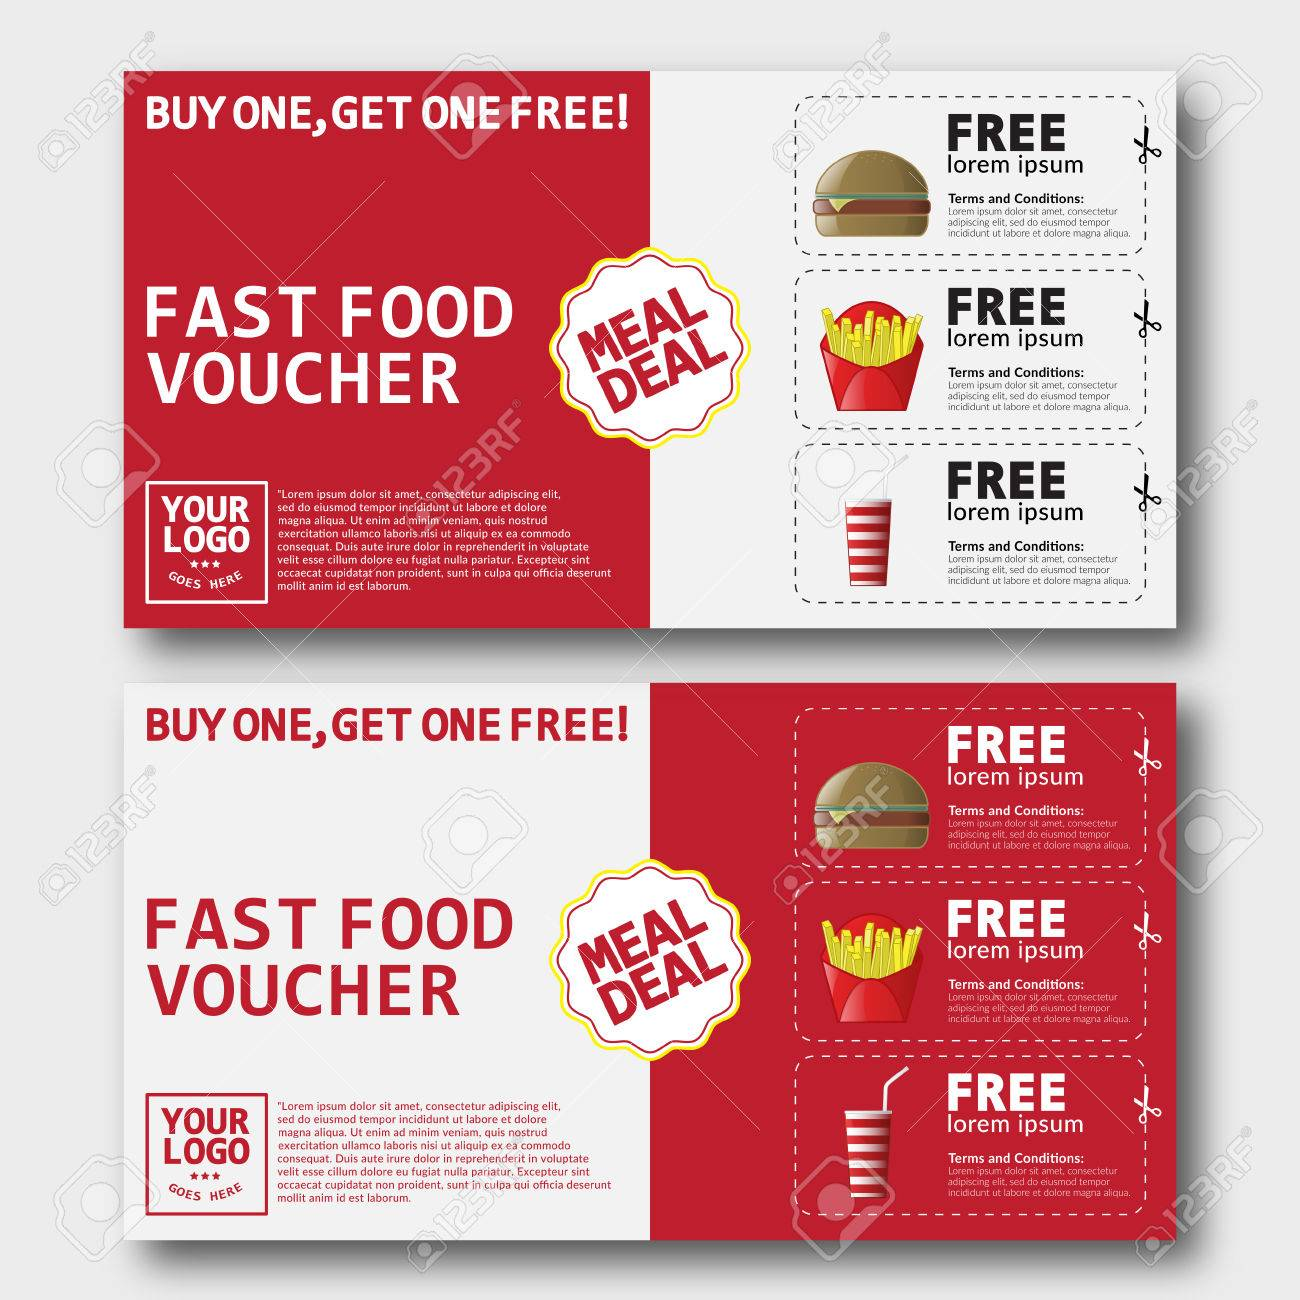 Lunch Voucher Template Software User Guide Template 67763121 Fast Food  Voucher Template With Hamburger Fries And  Lunch Voucher Template